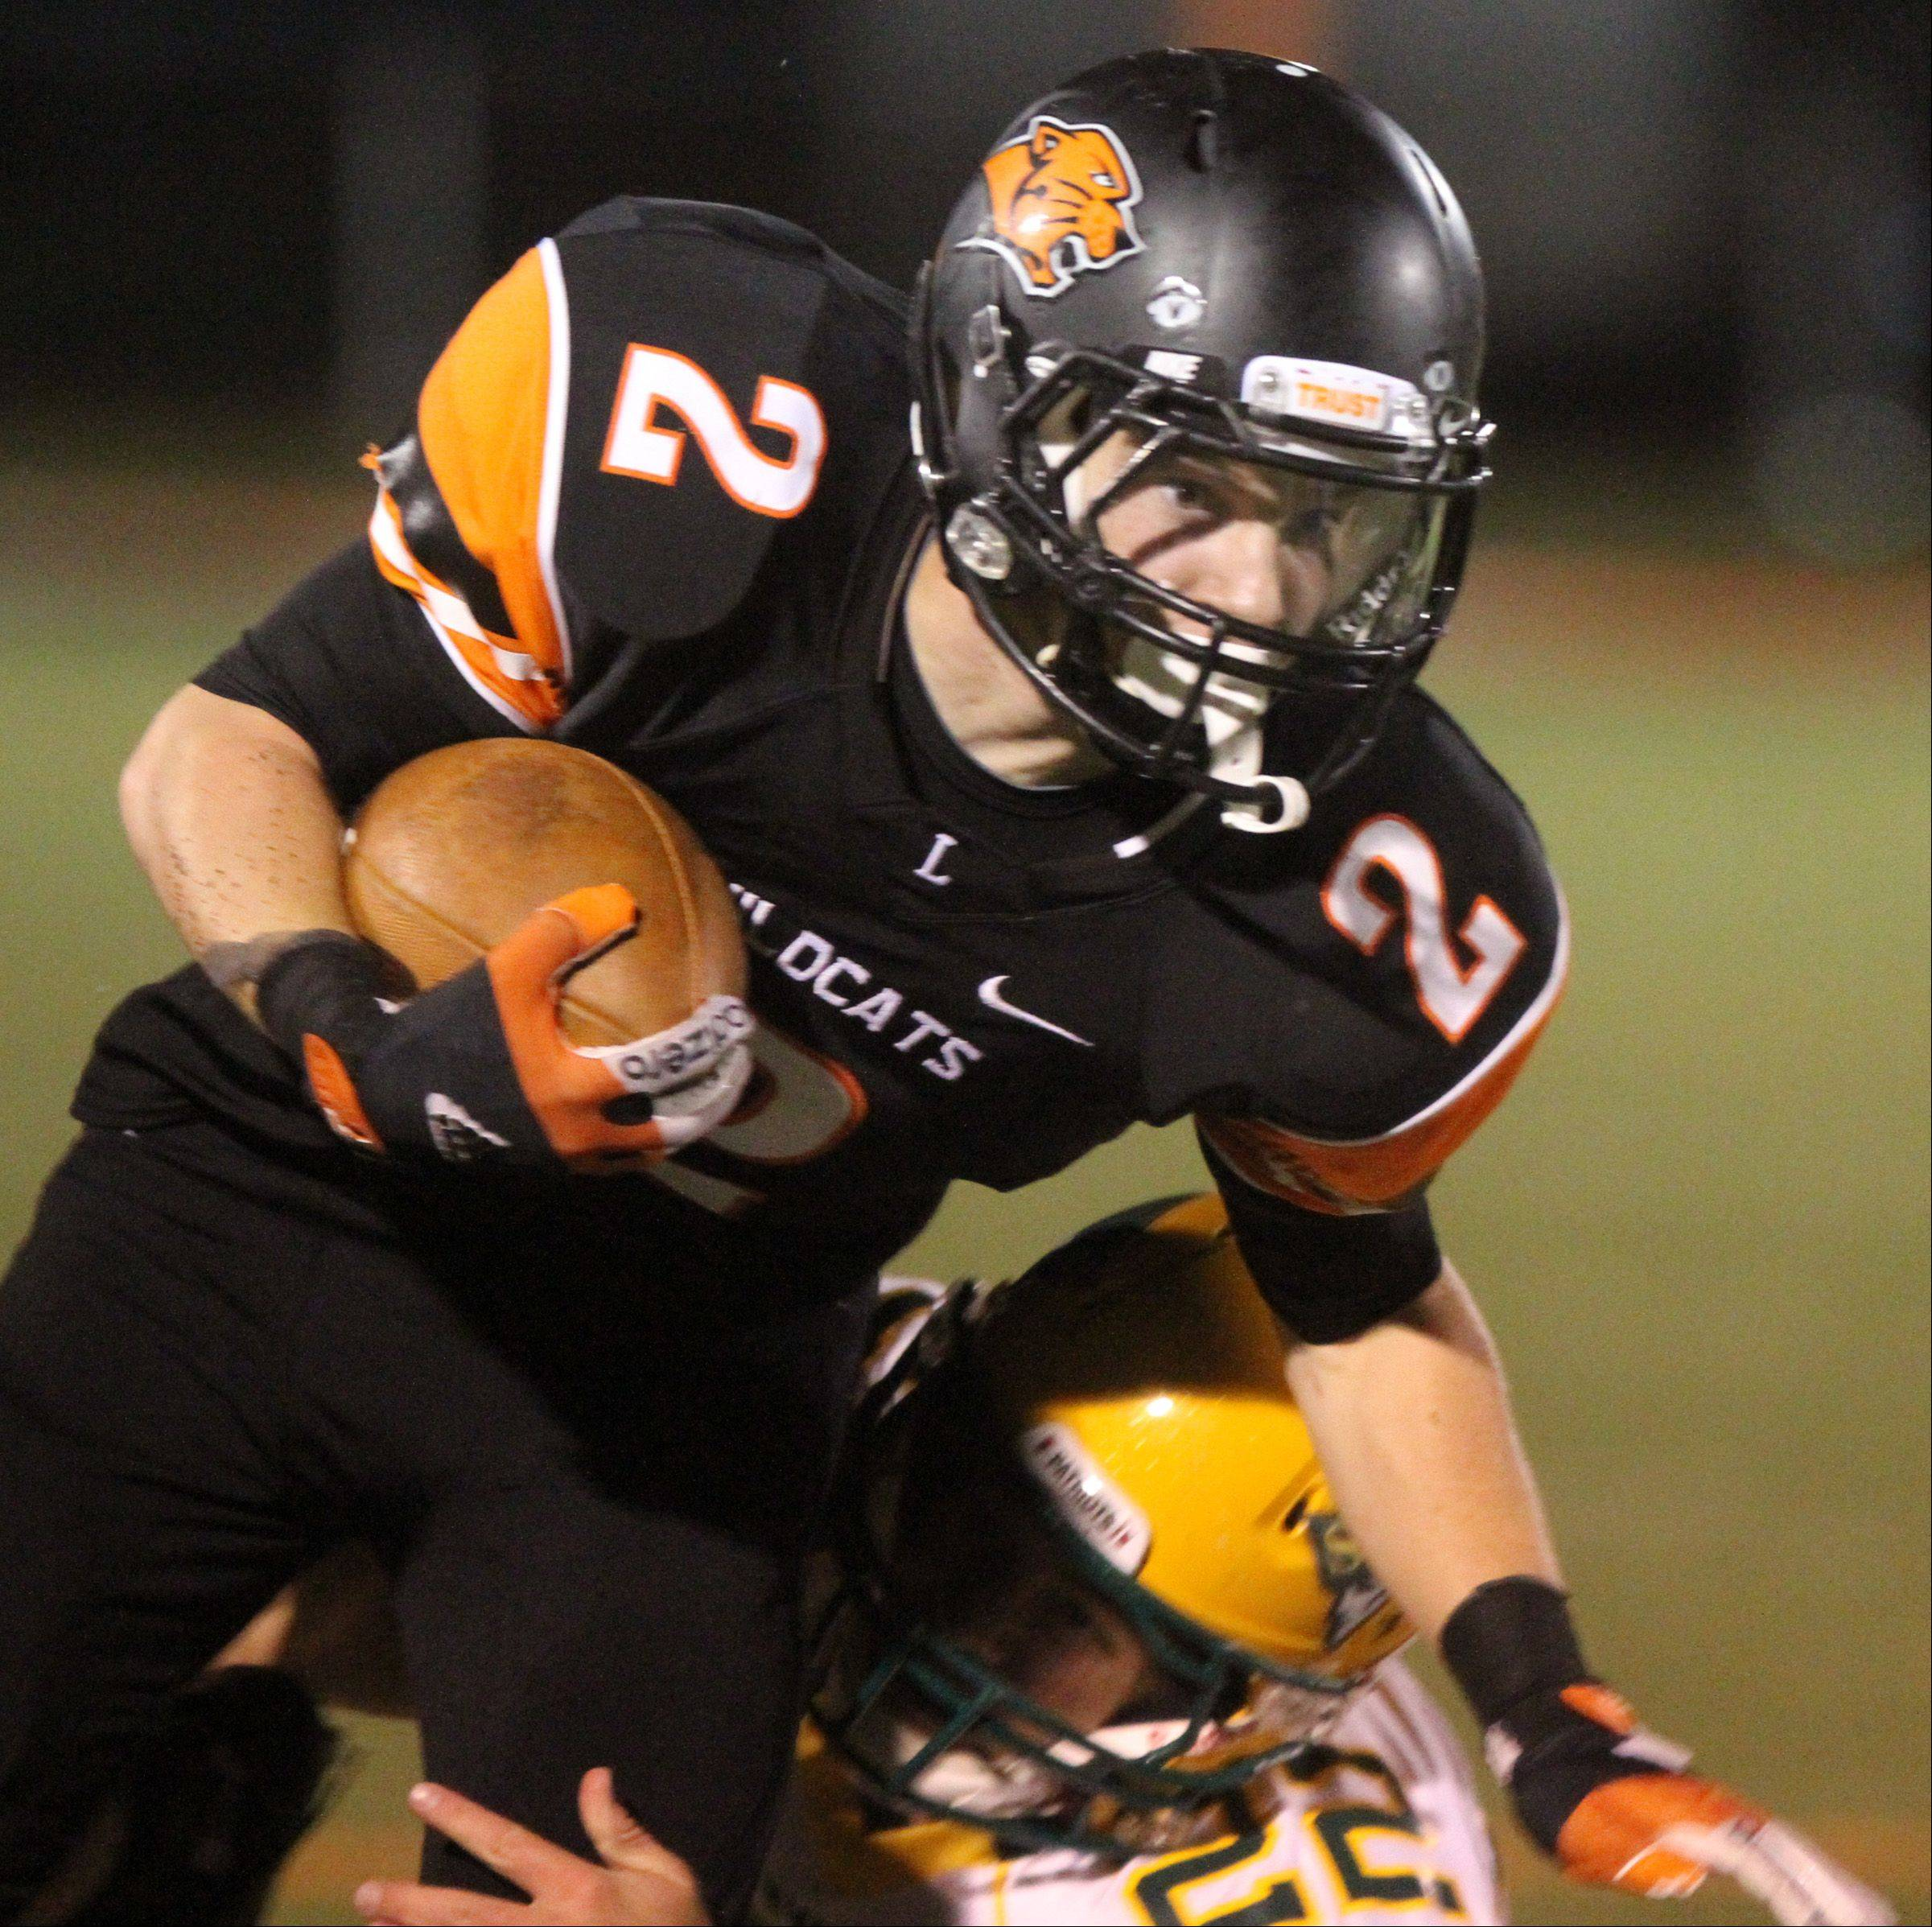 Libertyville running-back Conor Simpson tucks the ball in against Stevenson defender Timmy Breen at Libertyville on Friday.